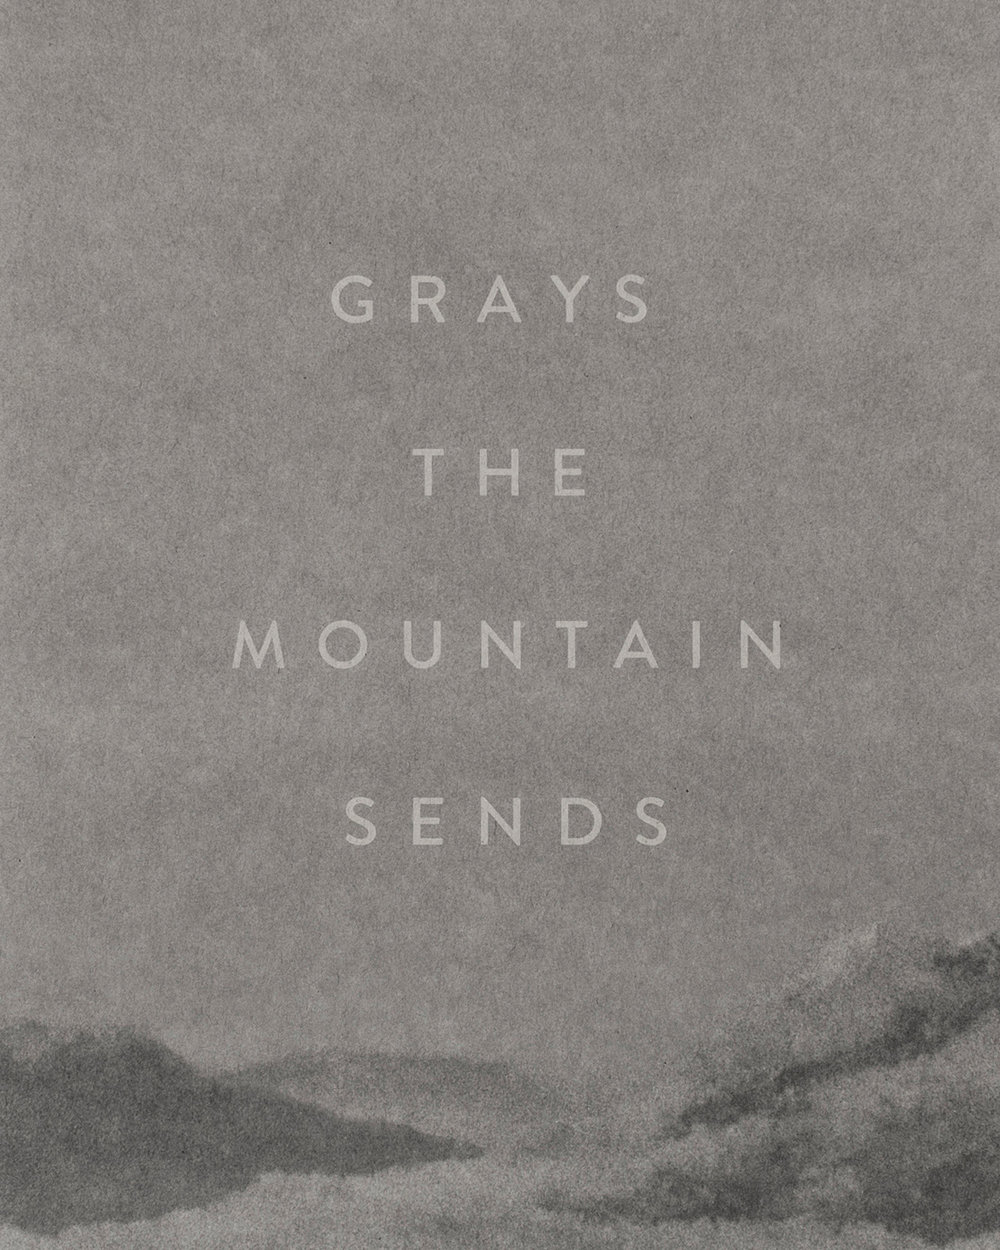 Inspired by the poetry of Richard Hugo,  Grays the Mountain Sends  combines portraits, landscapes, and still lifes in a series of photos about the lives of working people residing in small mountain towns and mining communities in the American West.